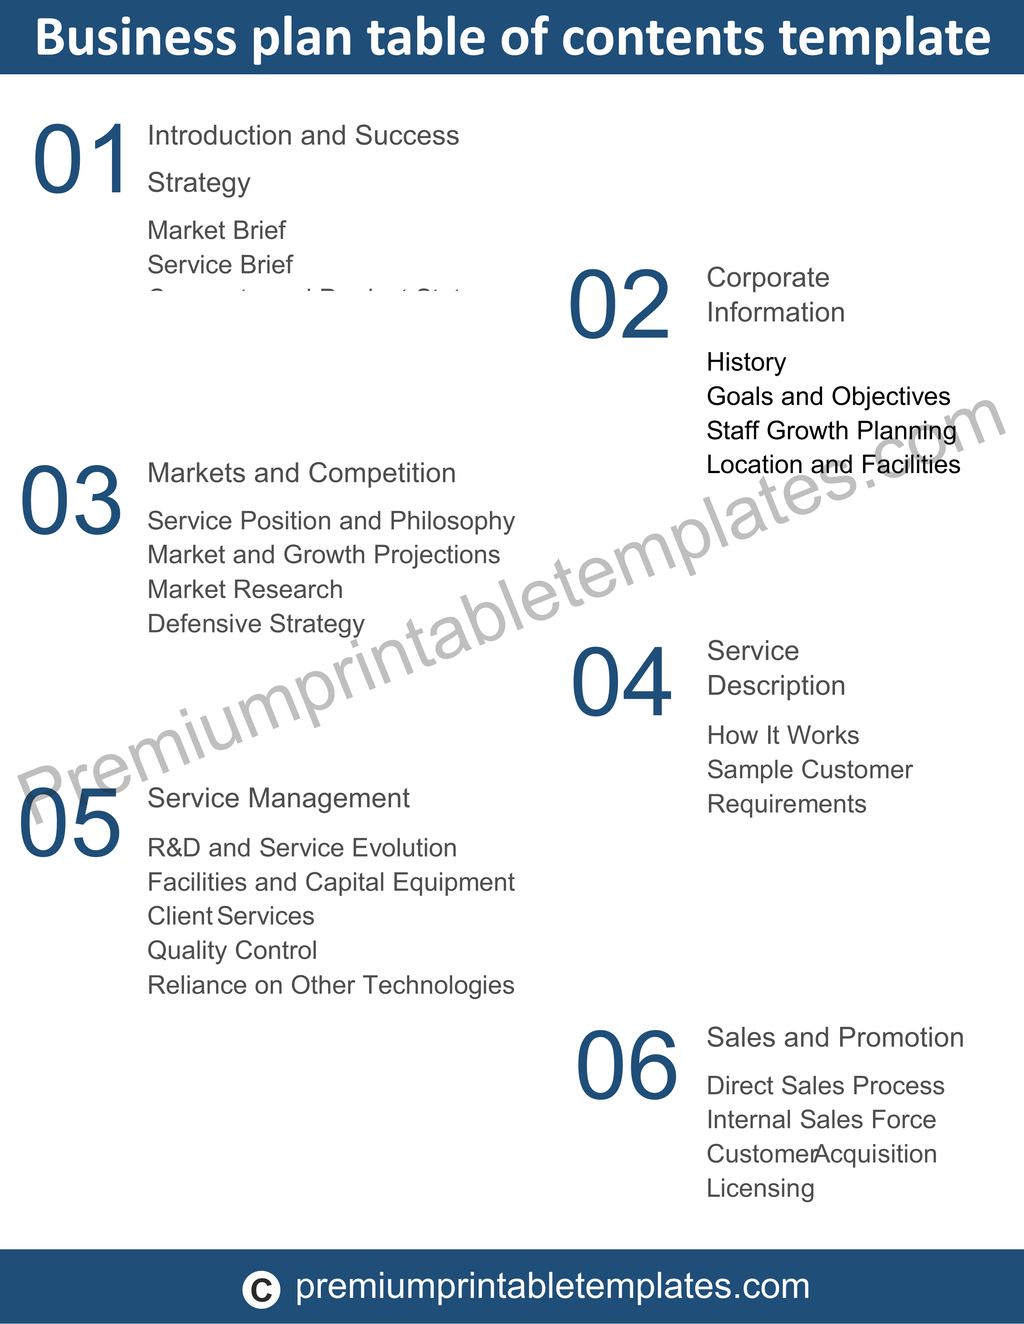 Business Plan Table of Contents Templates